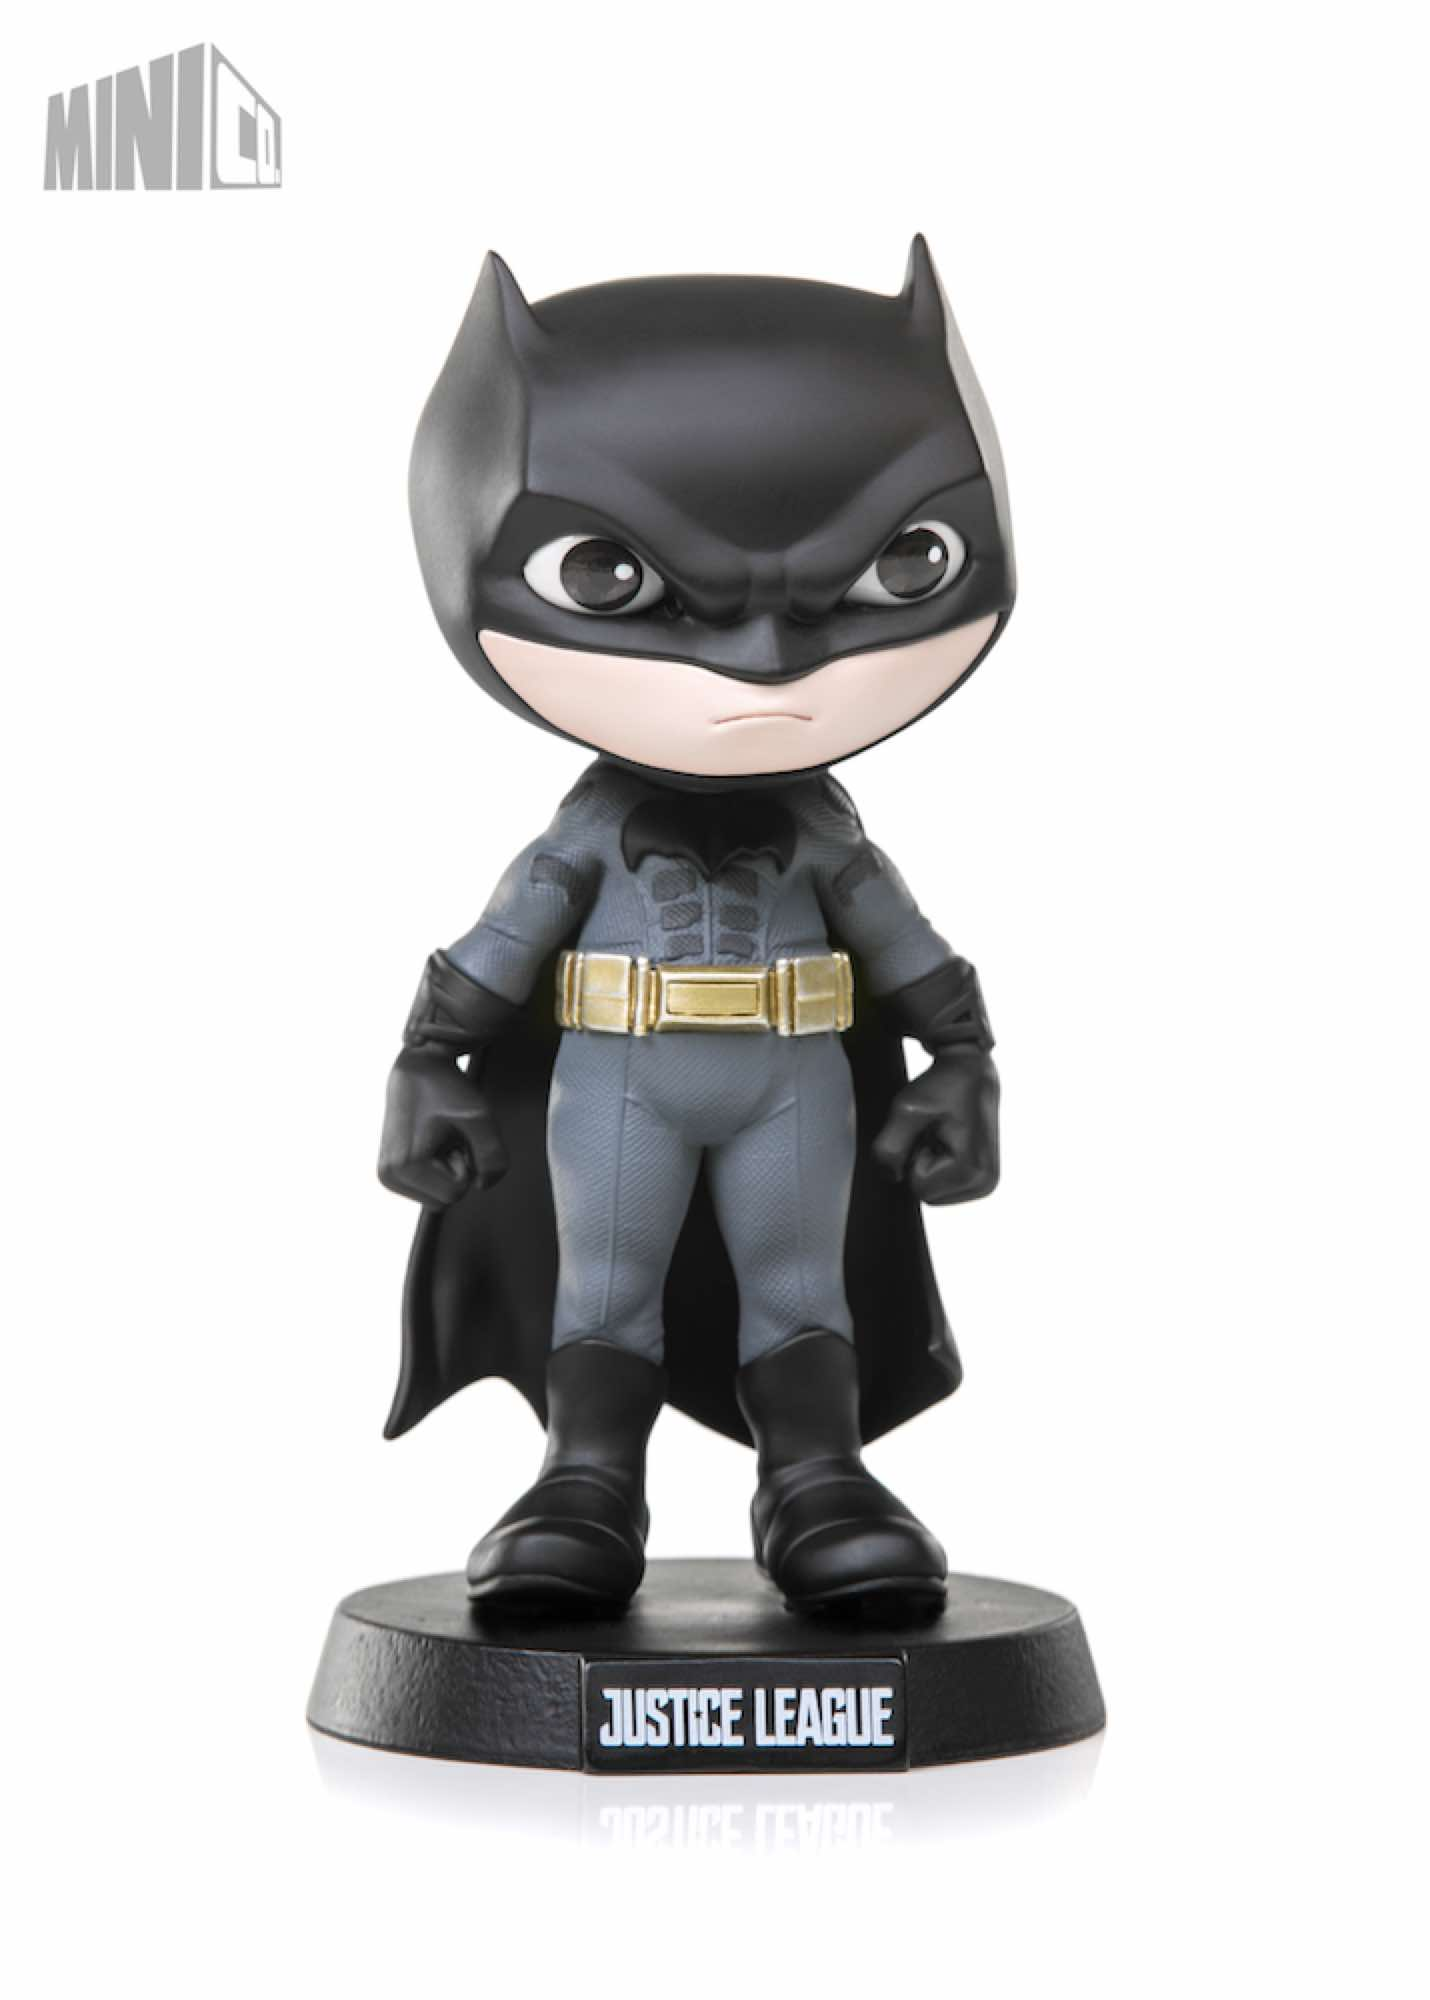 BATMAN FIG 14 CM JUSTICE LEAGUE UNIVERSO DC IRON STUDIOS MINICO HEROES